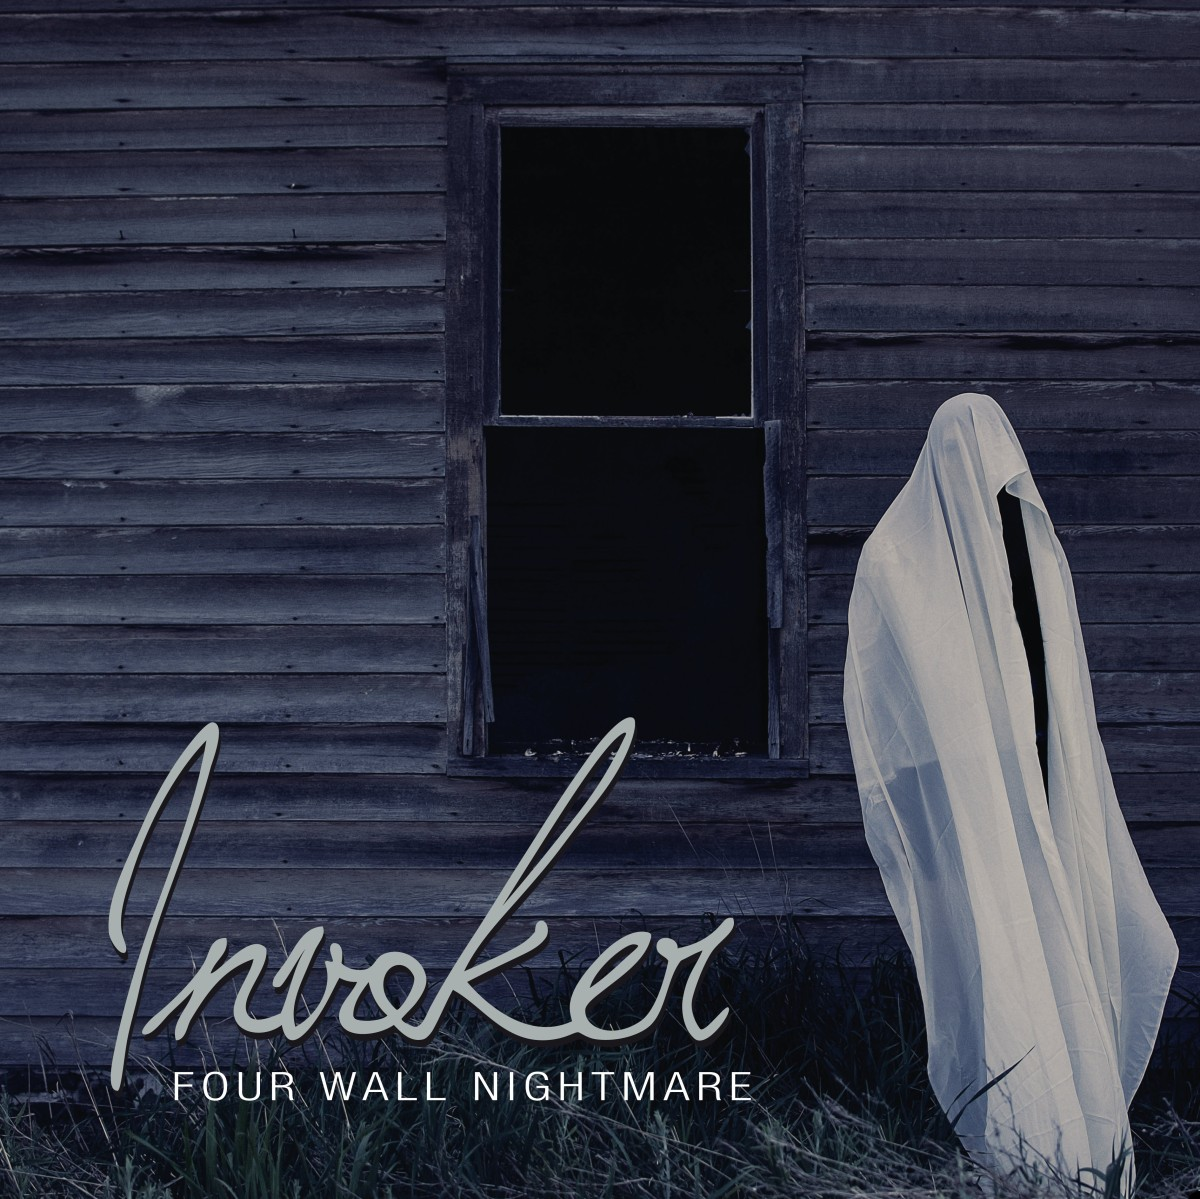 Invoker – Four Wall Nightmare (Review)